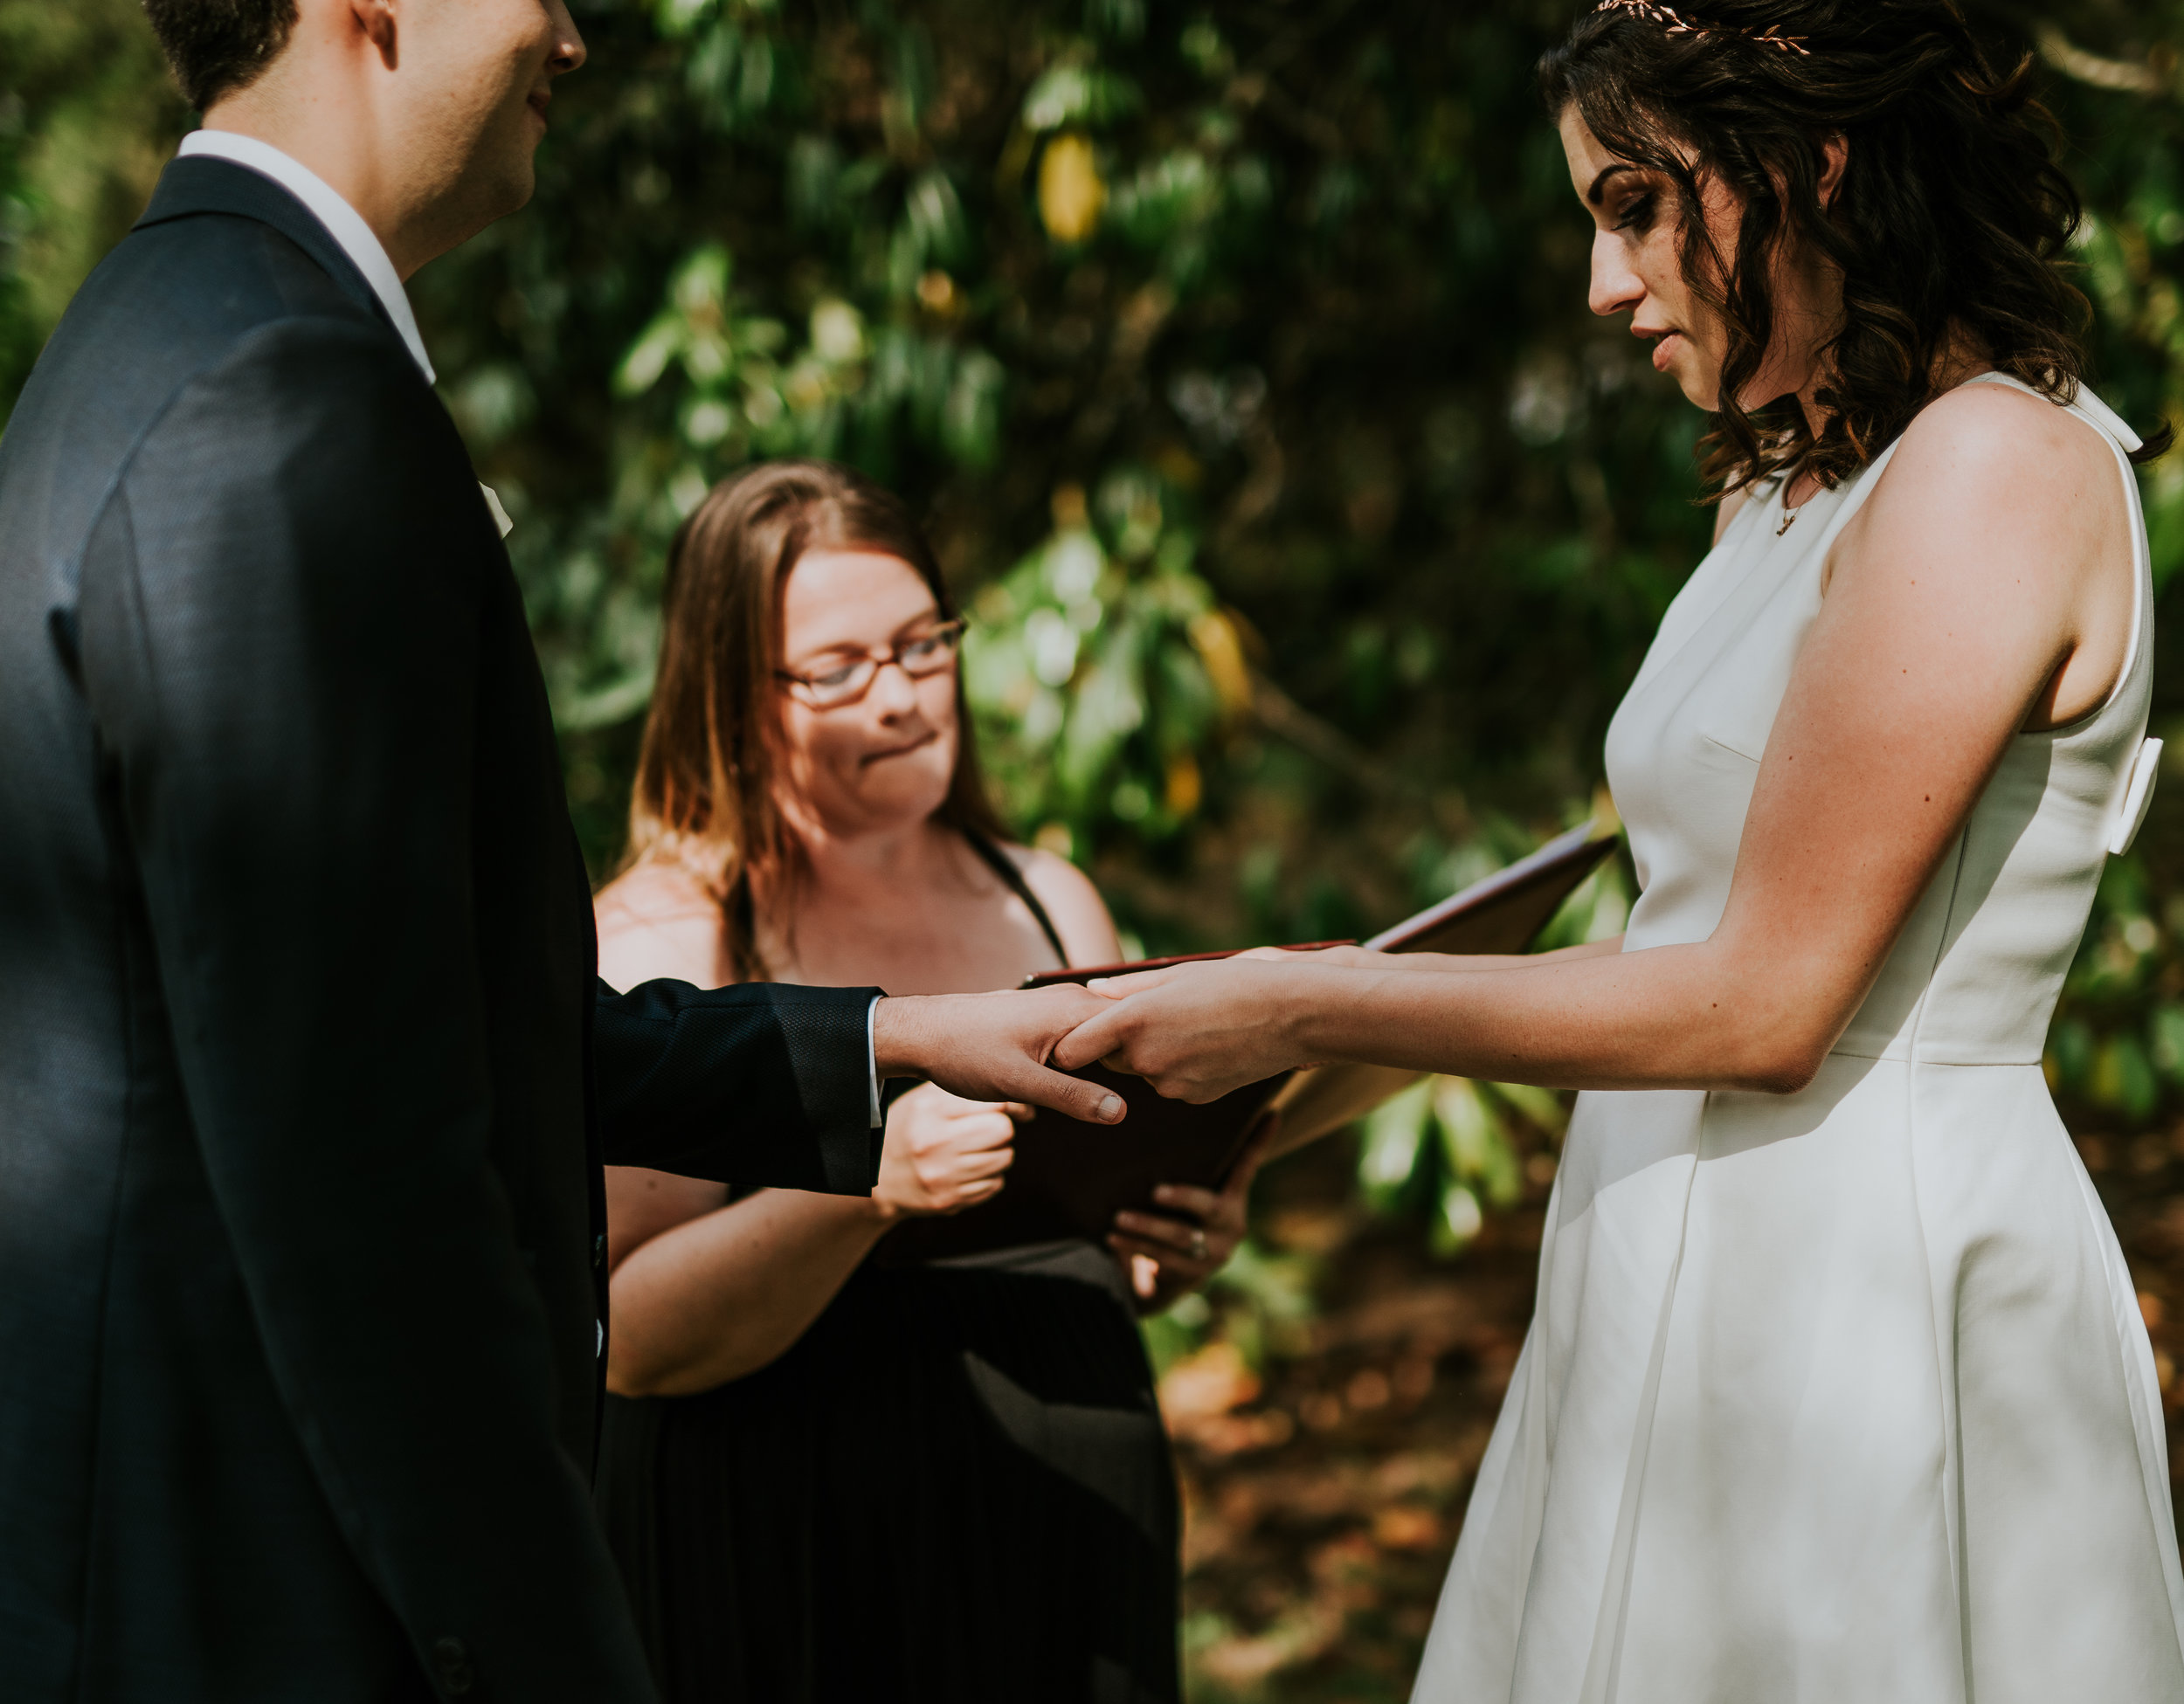 exchanging rings - Arianna Belle Photography